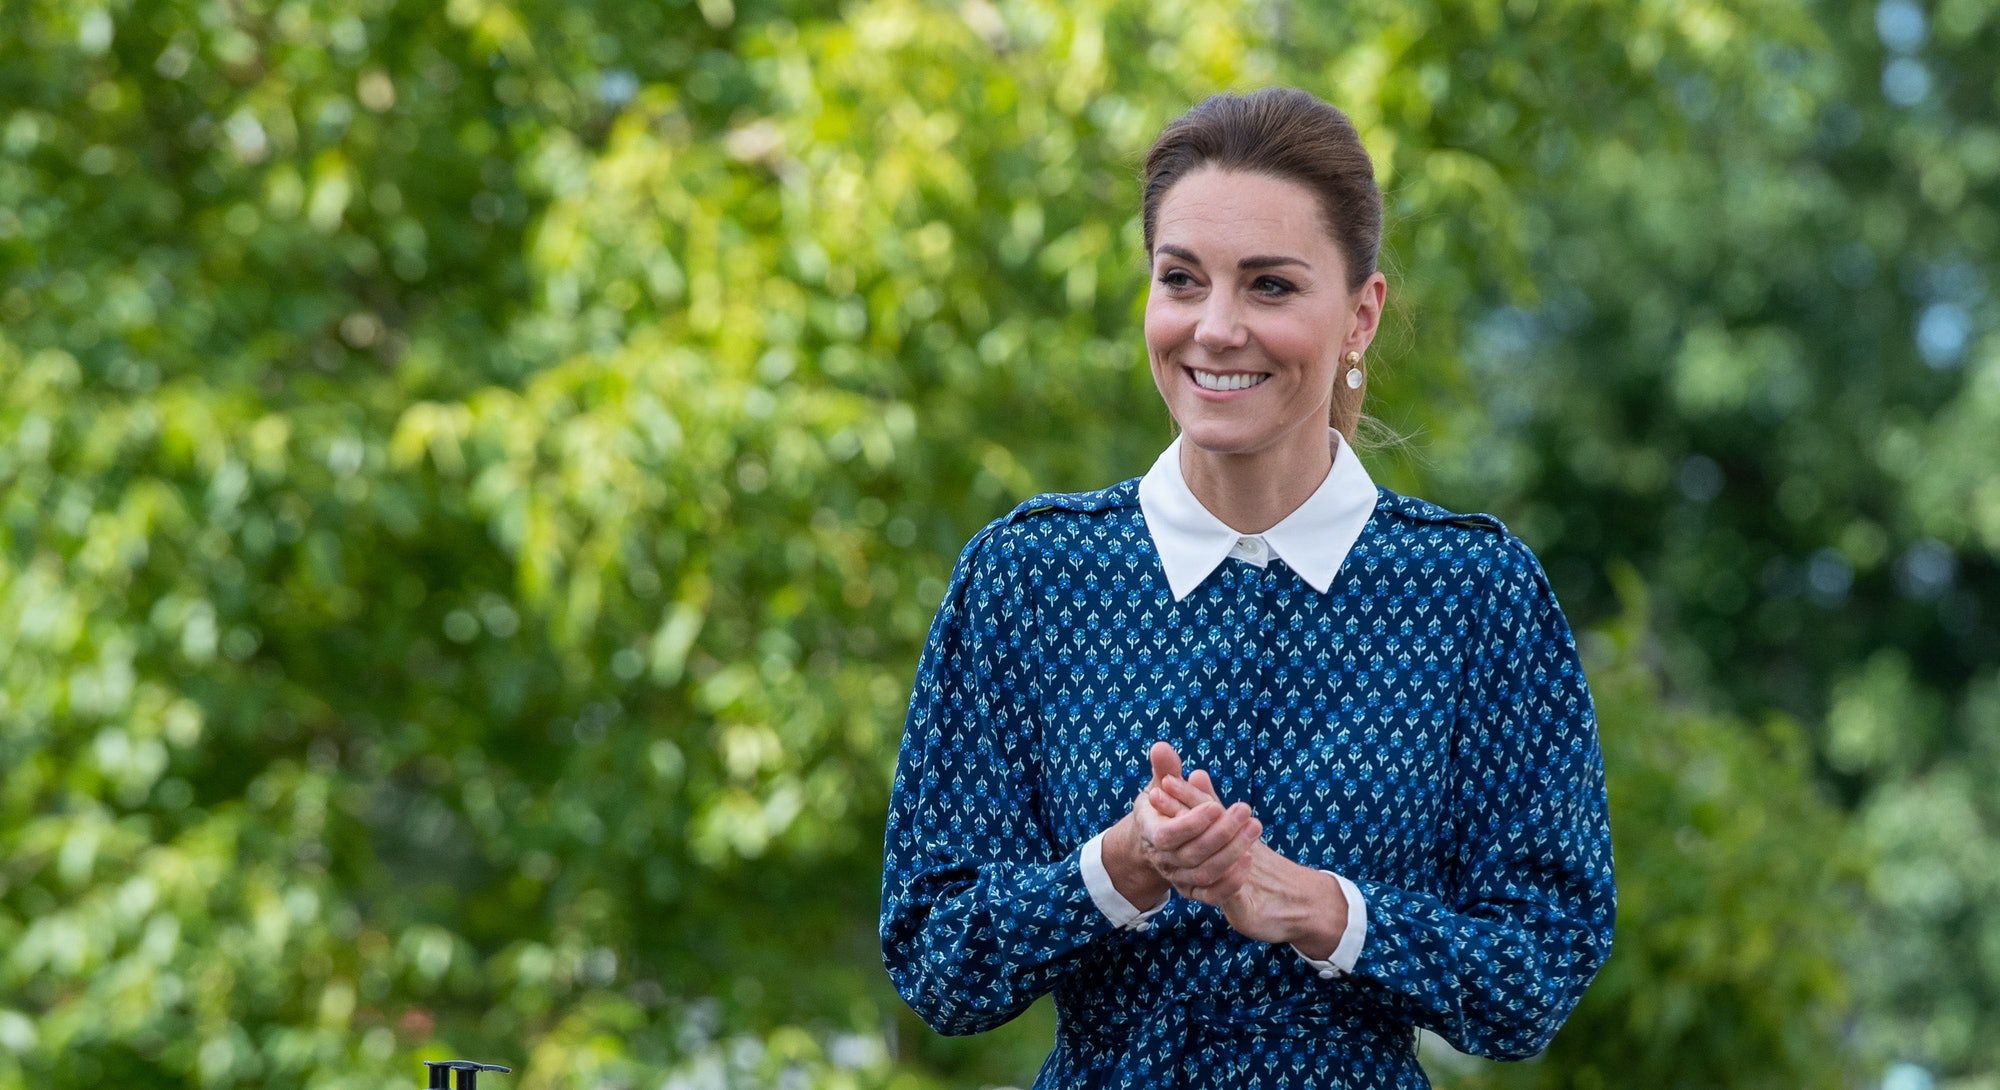 Kate Middleton's adorable beanie hat landed her on Bustle's list of best-dressed celebrities this week